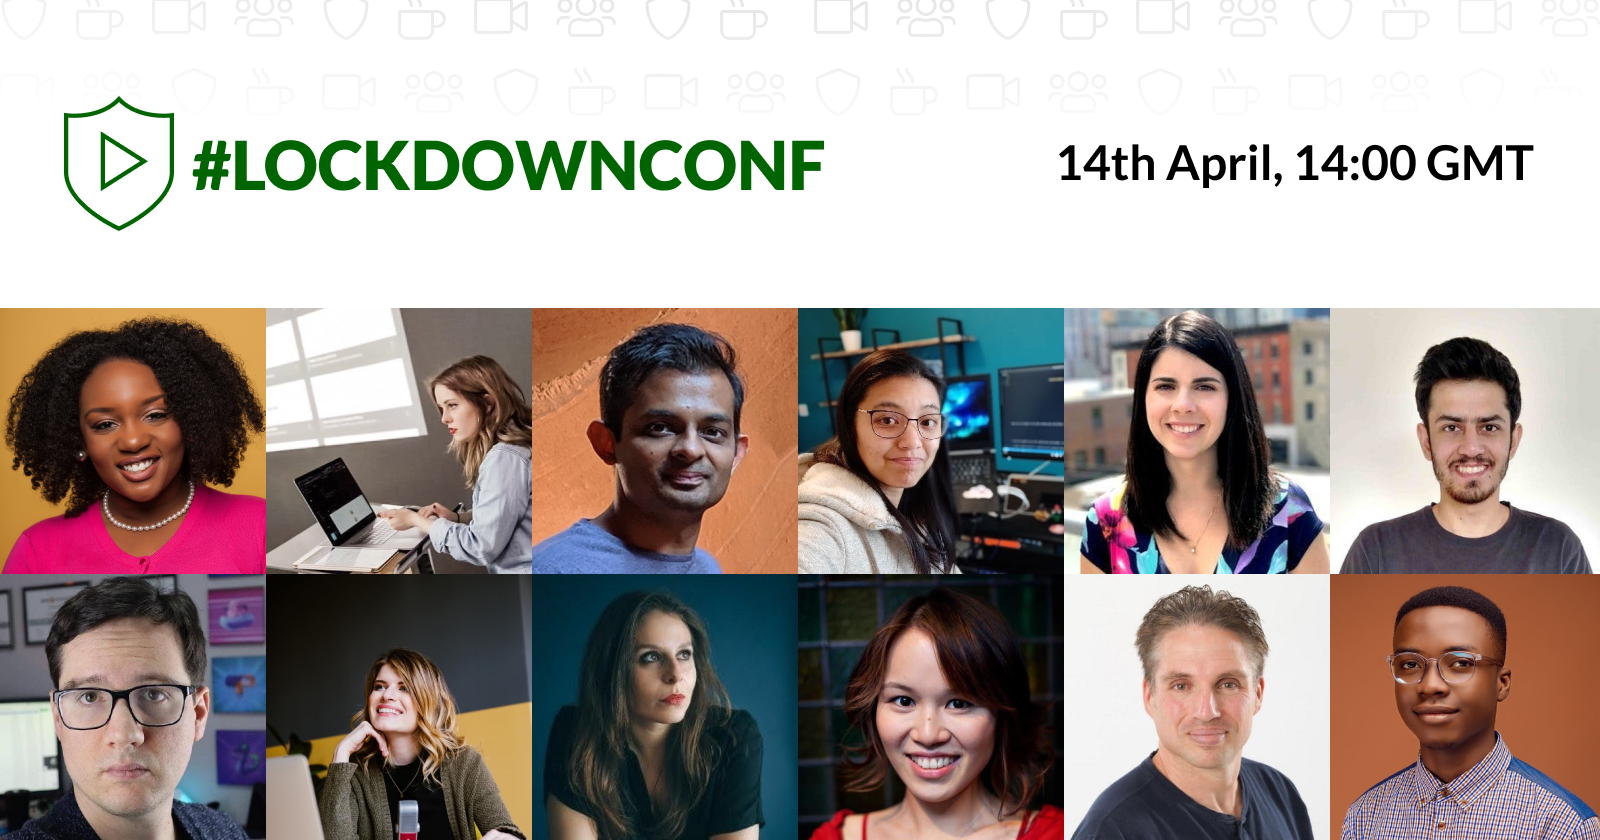 LockdownConf – A Free Online Conference to Help You Prepare for a Post-Pandemic World